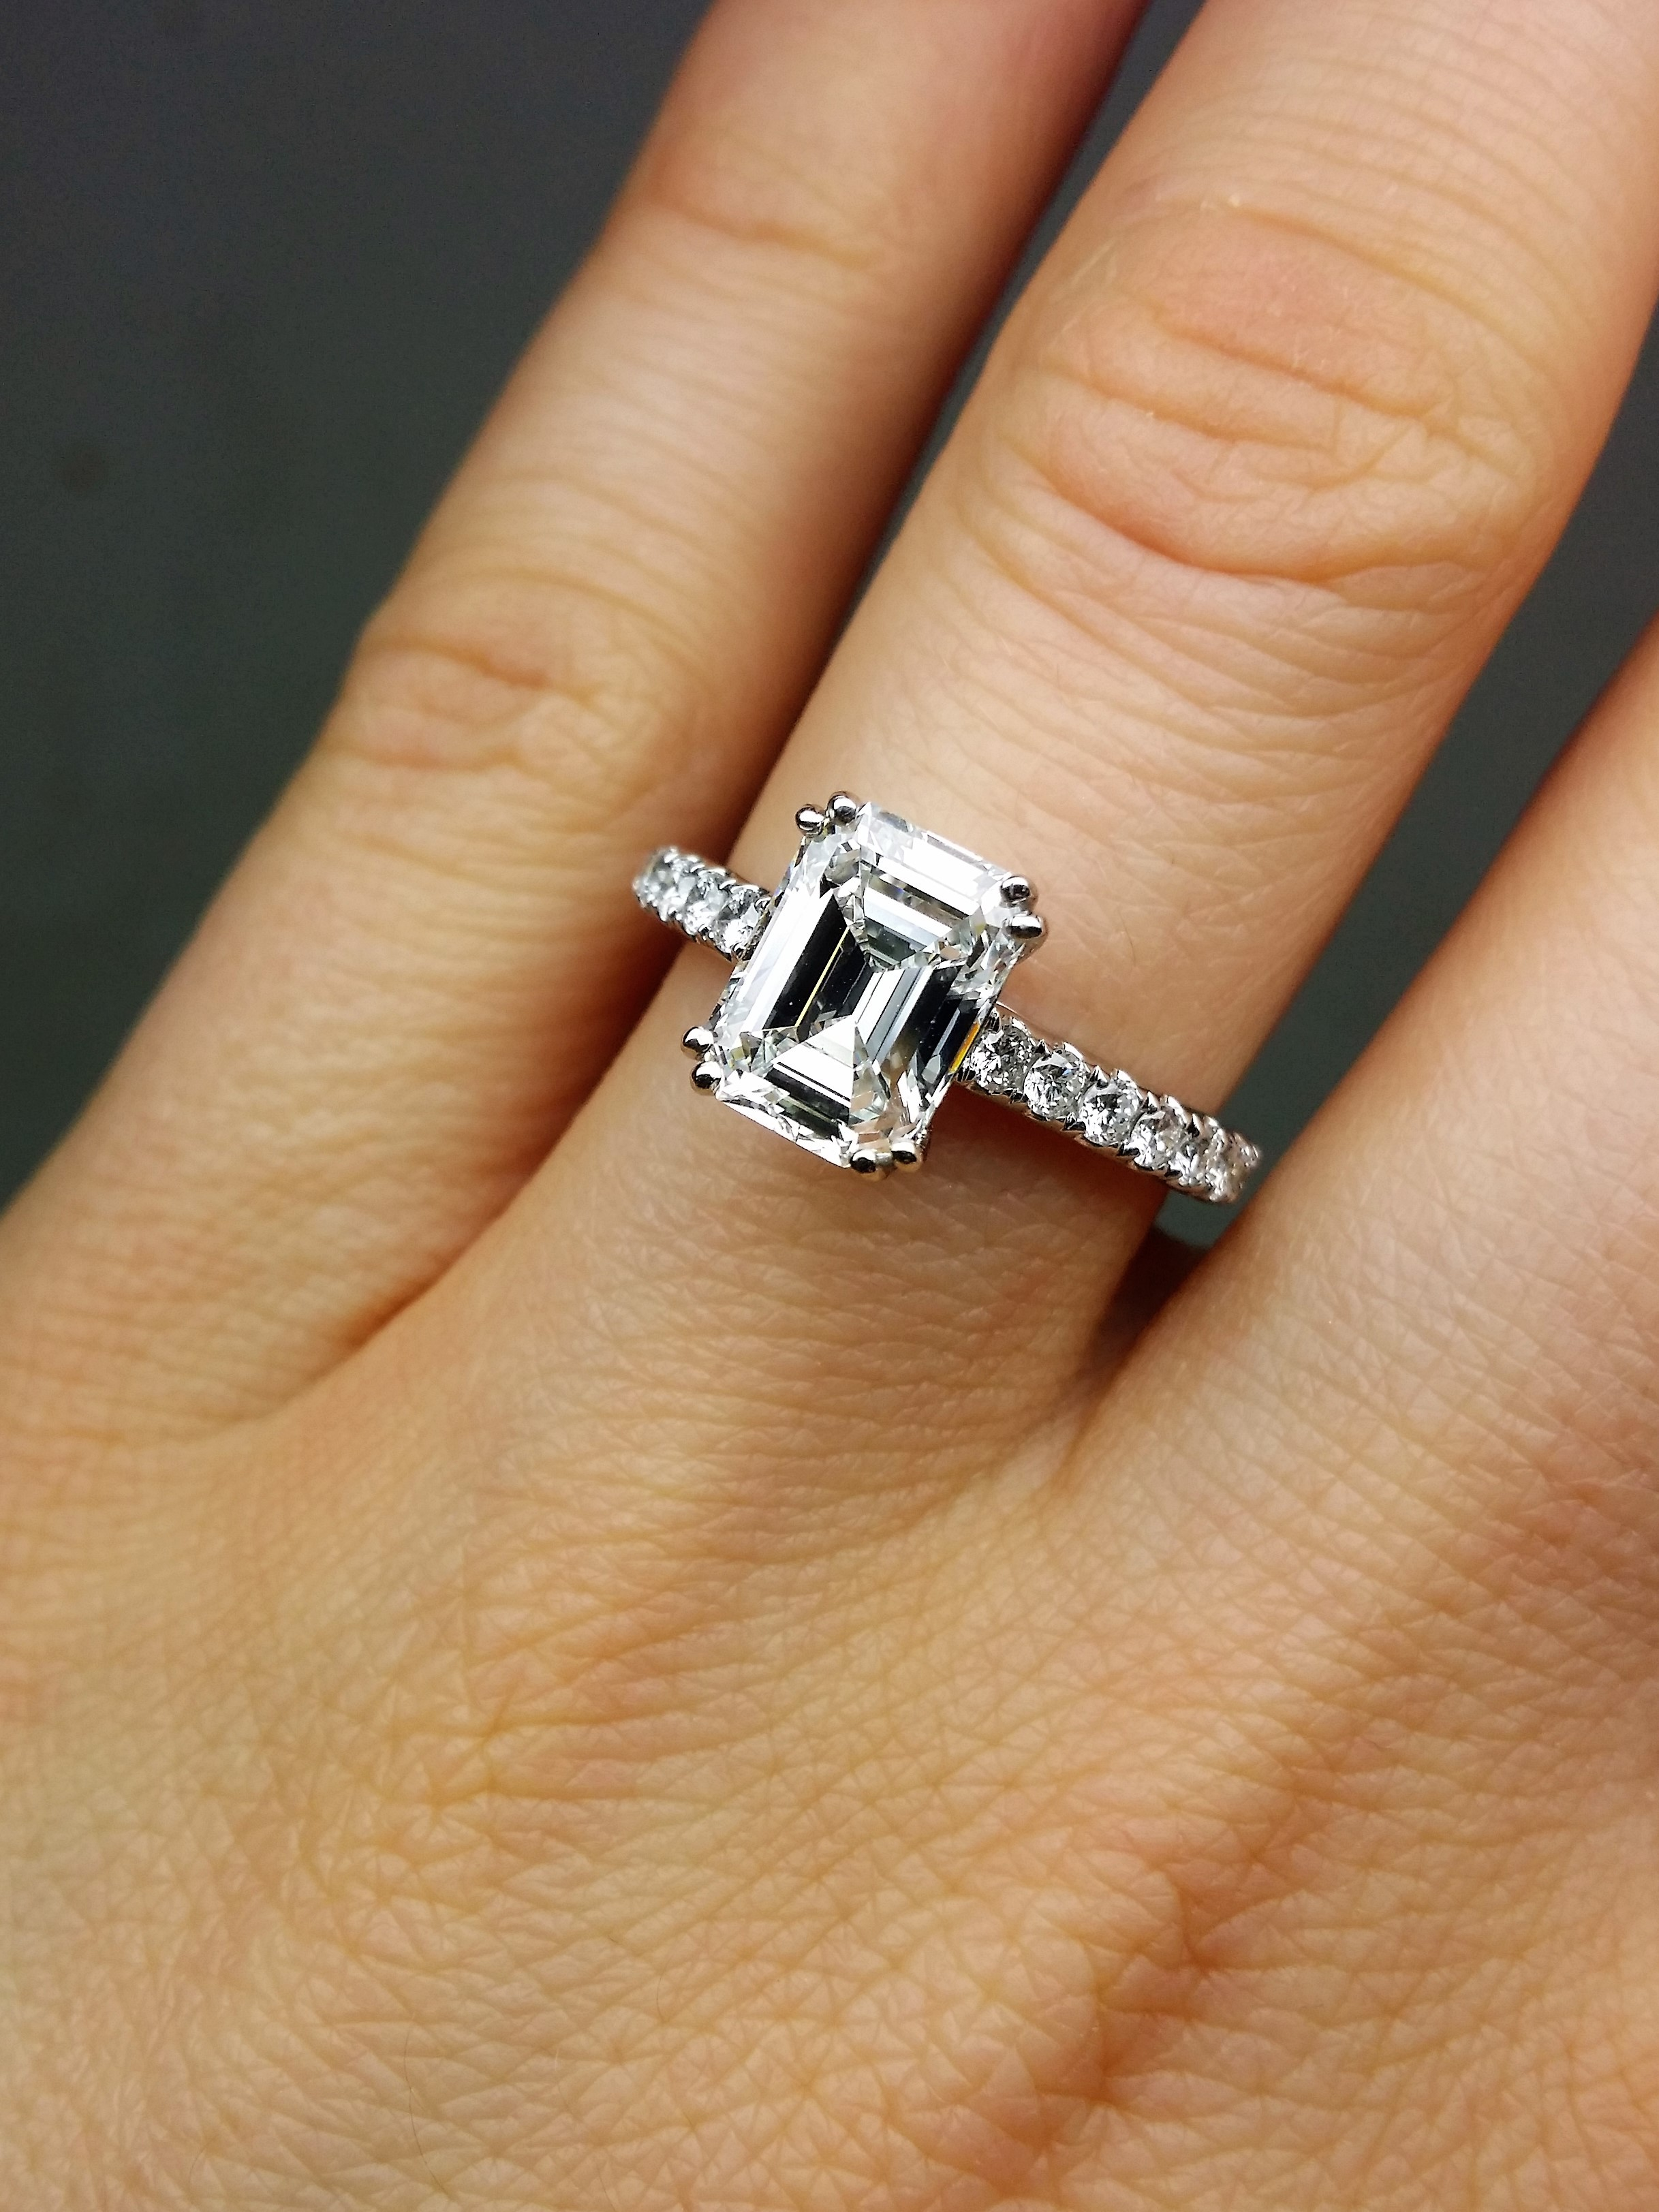 One of kind EGL certified  emerald cut diamond ring